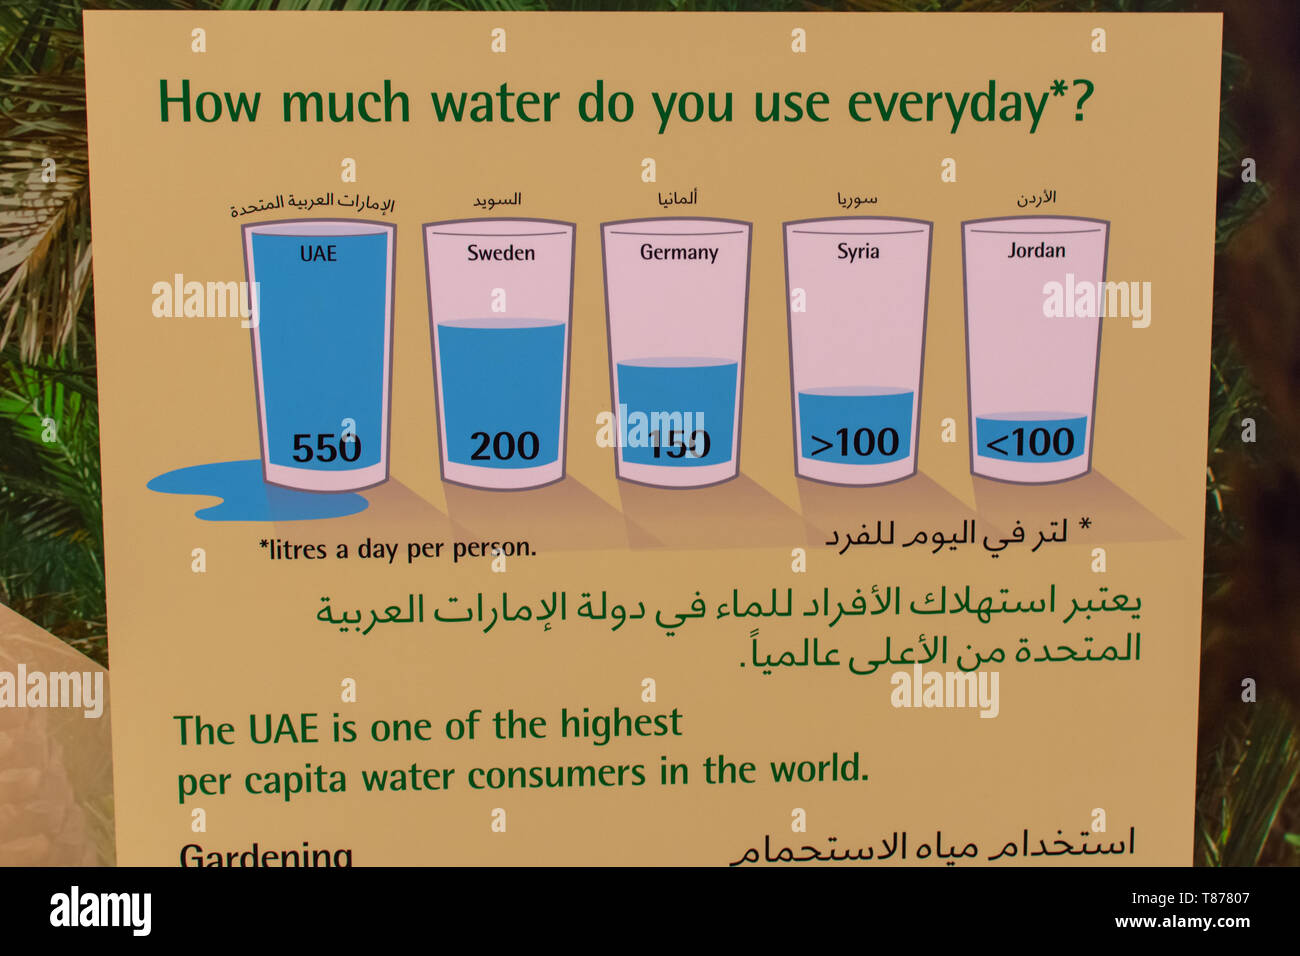 'Al Ain, Abu Dhabi/United Arab Emirates - 4/3/2019 - Litres a Day Water Use or Consumption sign in UAE in English and Arabic for Education.' - Stock Image